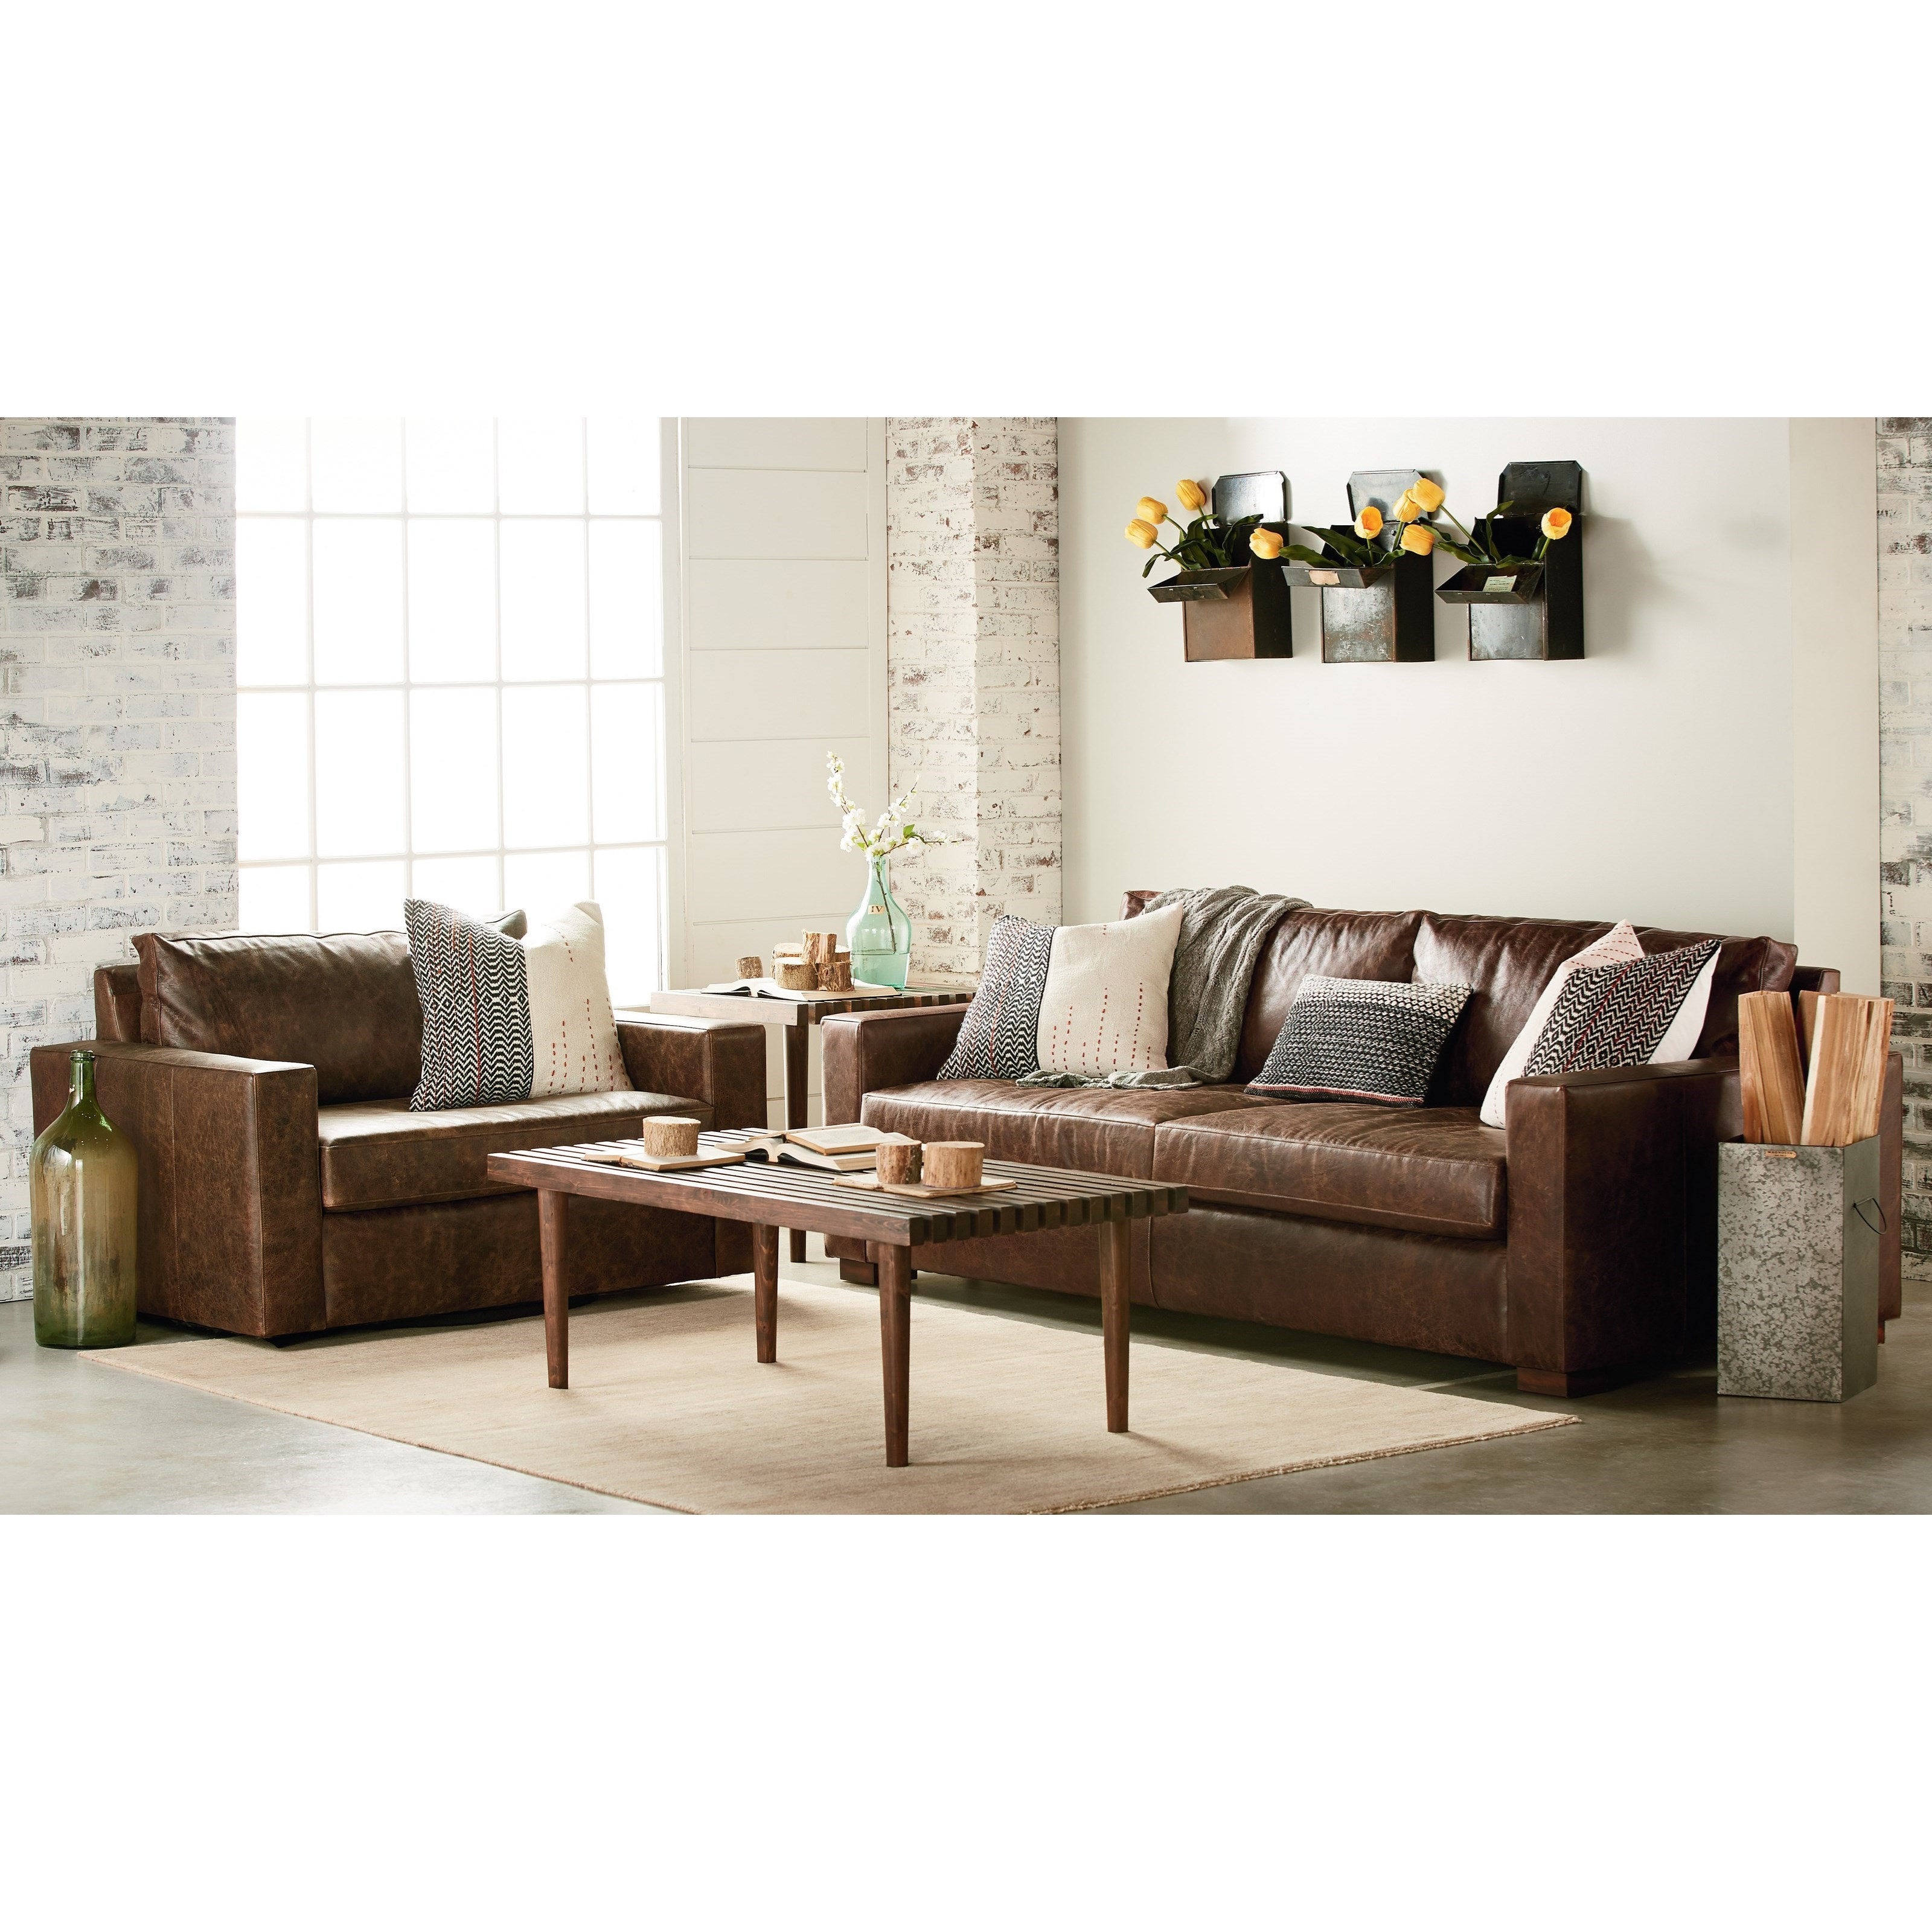 Living Room Group By Magnolia Home By Joanna Gaines Wolf And Gardiner Wolf Furniture